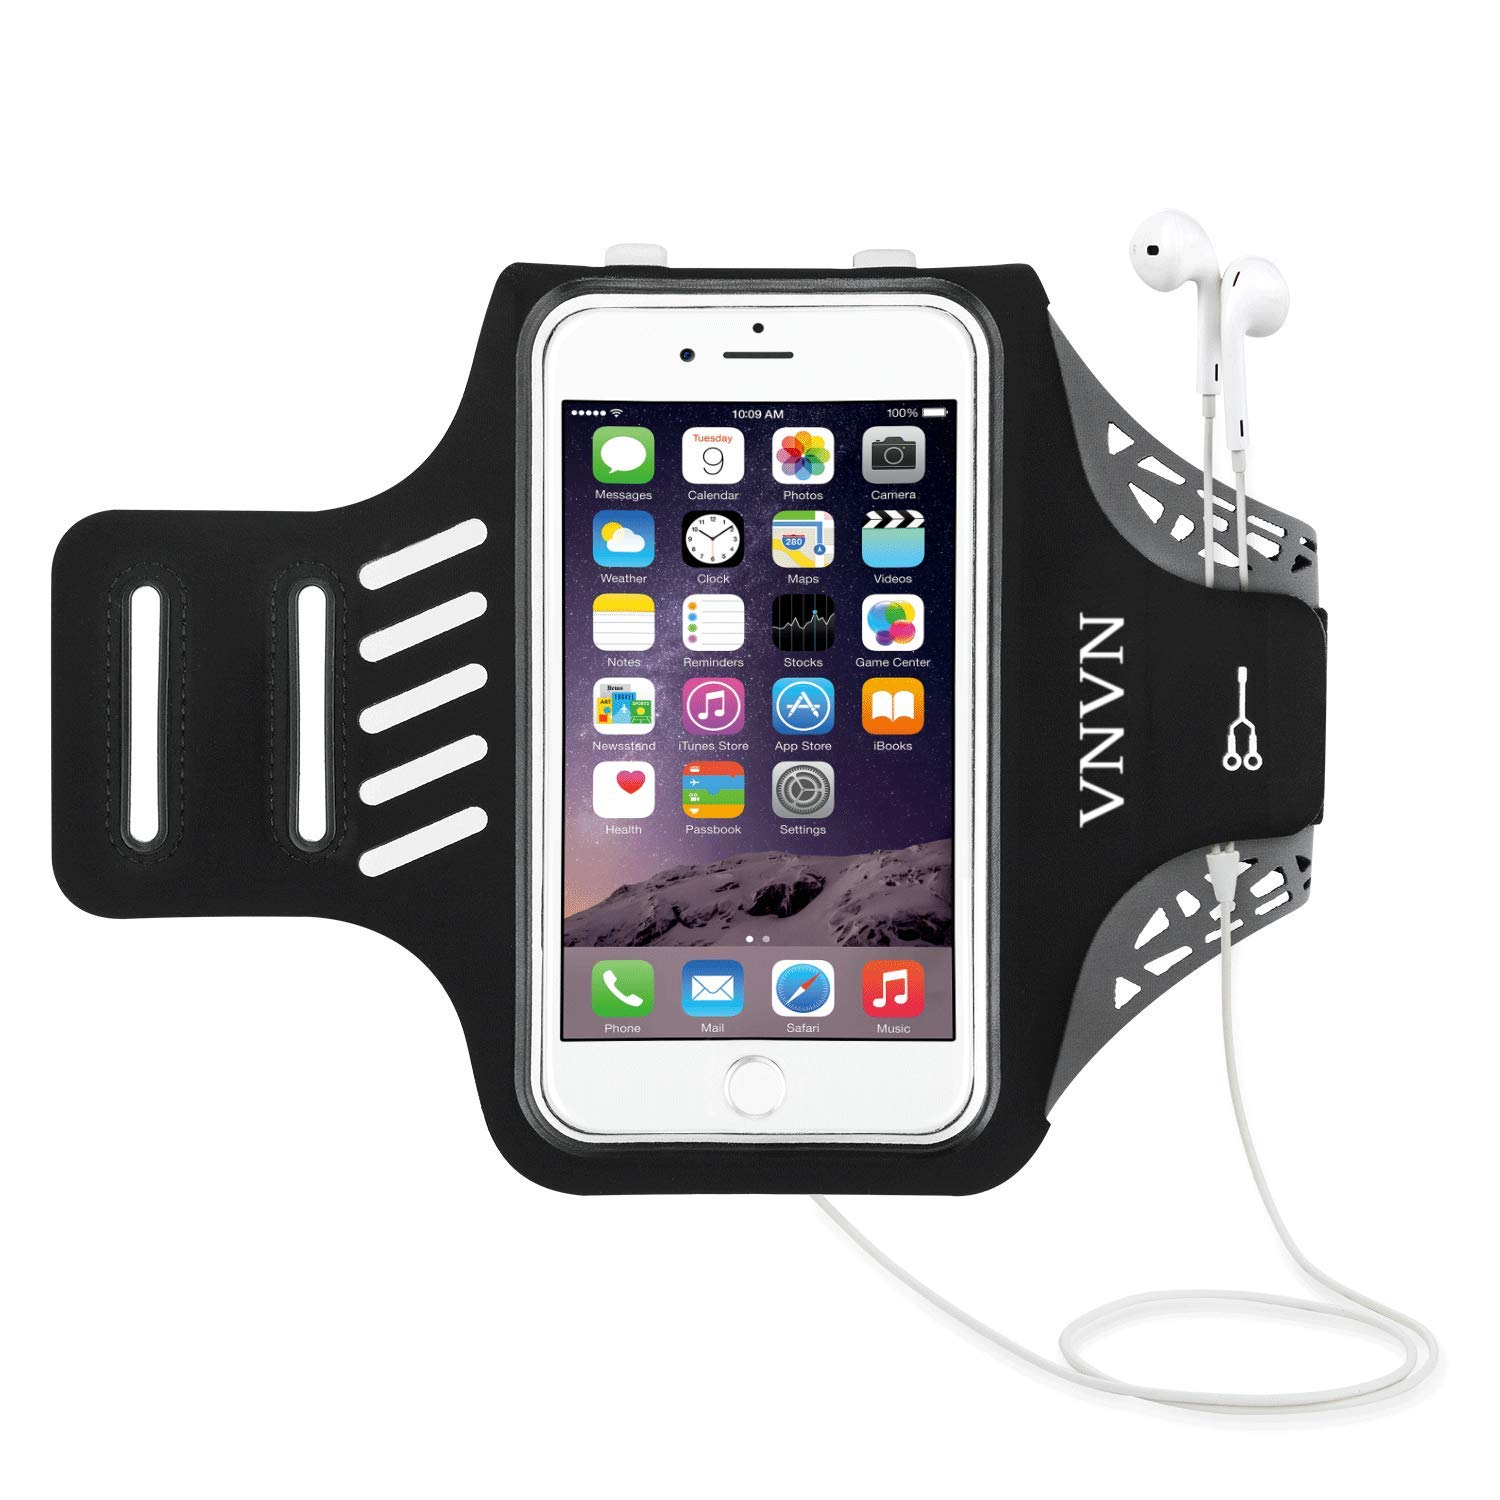 VNVN Water Resistant Sports Armband Arm Case Holder Compatible-iPhone Xs Max/8/7/6/6S Plus, Compatible-Galaxy S9/S8/S6/S5, S9 Plus, S8 Plus, Note 4 Bundle - Adjustable Reflective Velcro Workout Band by Flow.month